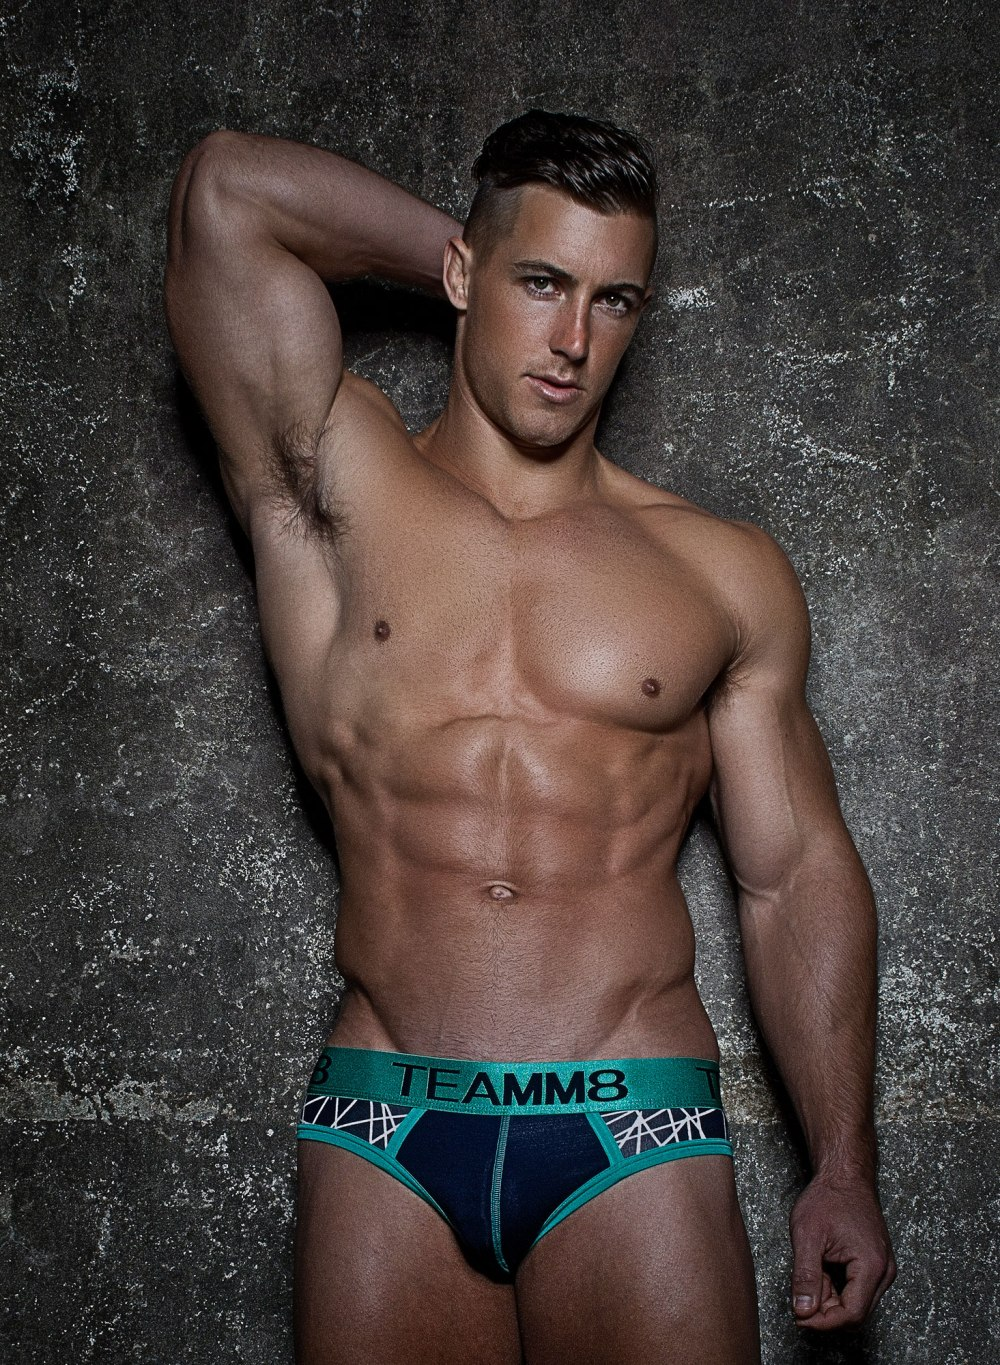 Kayne Lawton for Teamm8 7